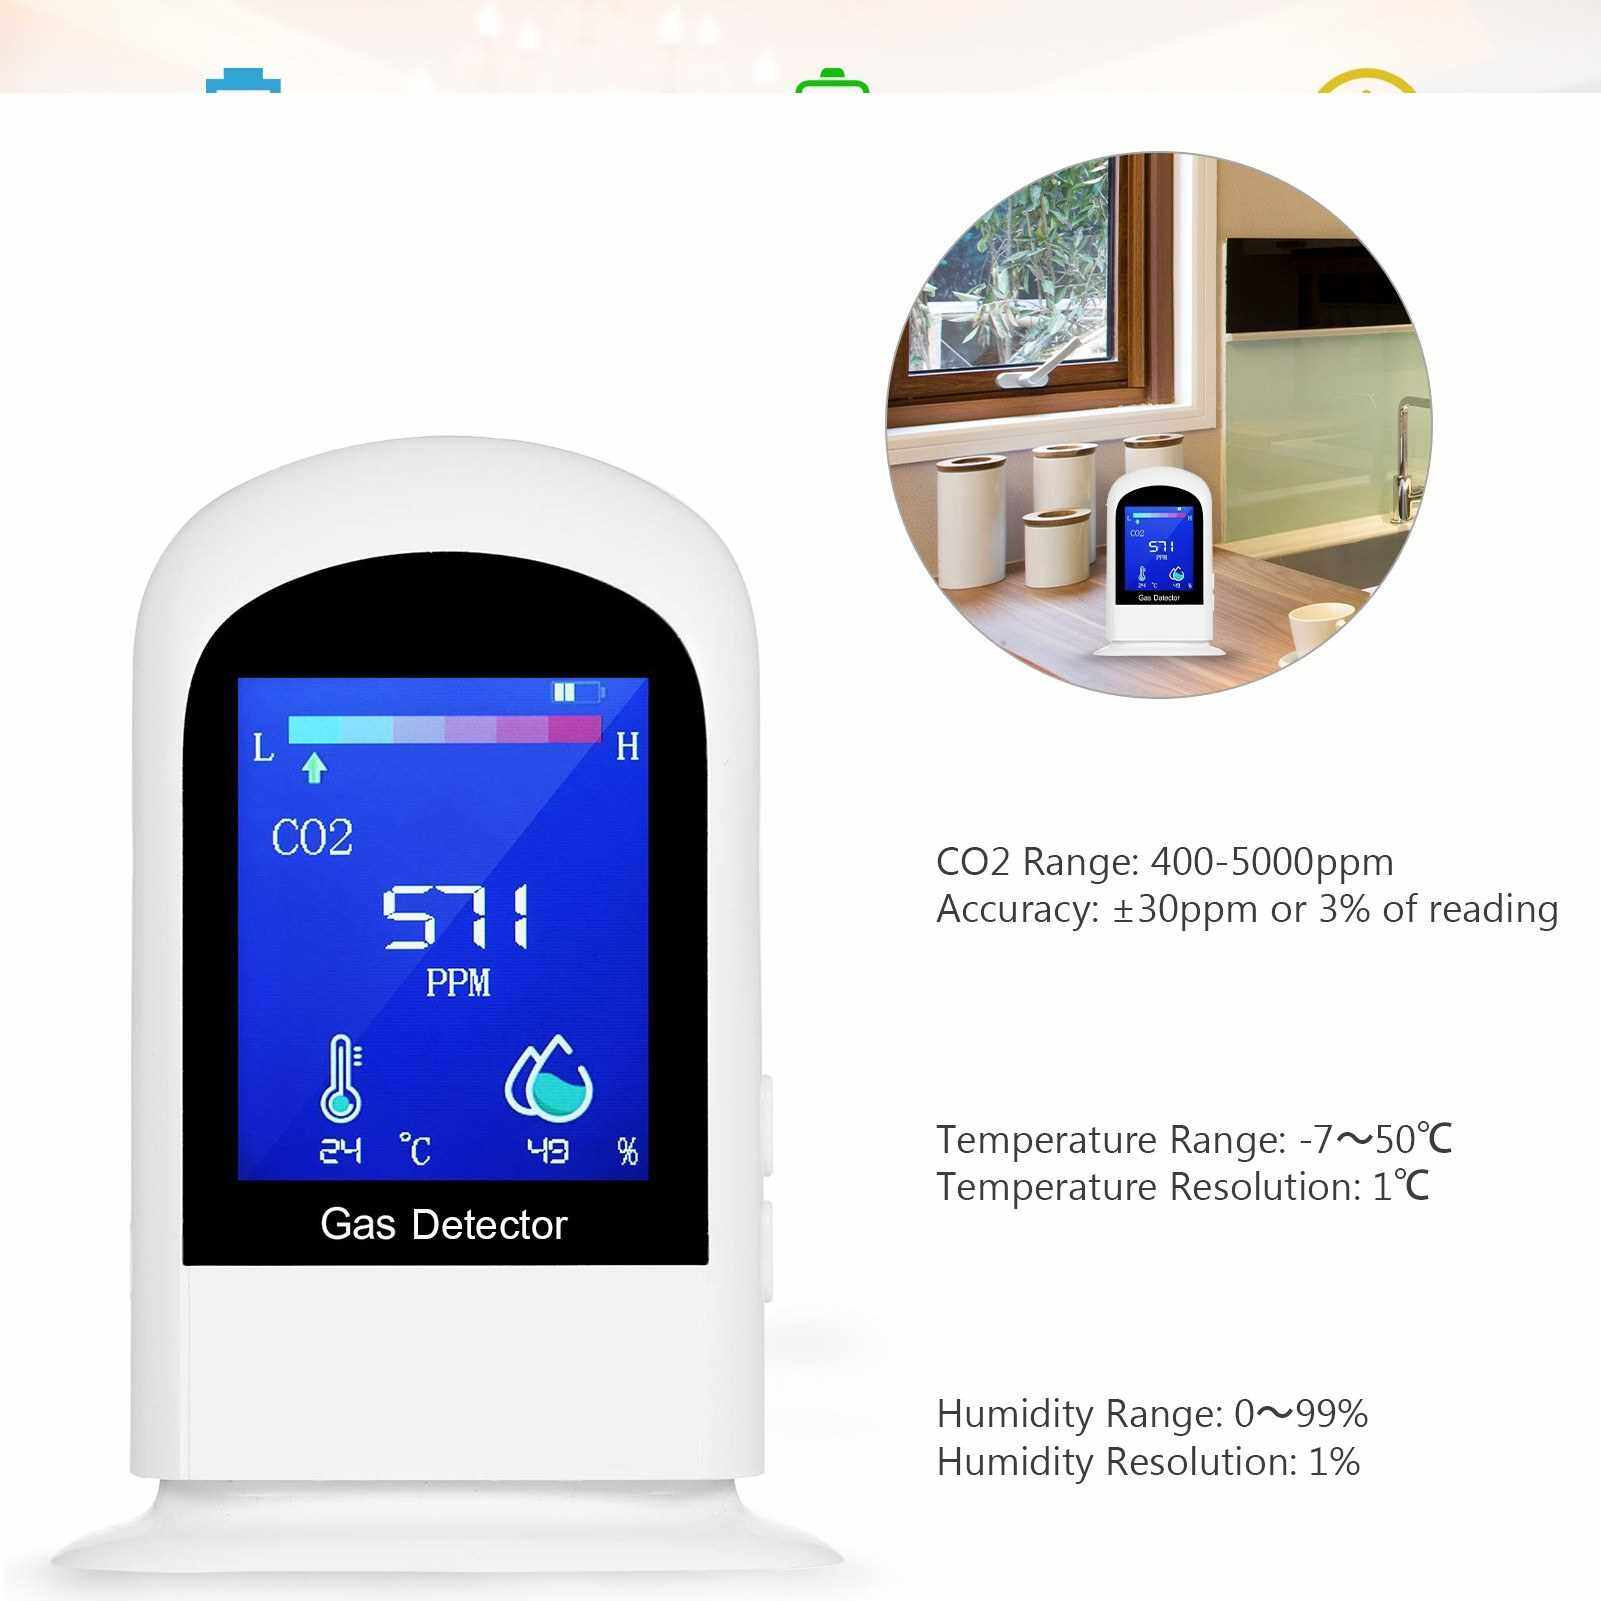 People's Choice Carbon Dioxide Meter Temperature/Humidity Air Quality Monitor CO2 Detector Accurate Tester Kit for Home Office NDIR Sensor Data Logger (Standard)